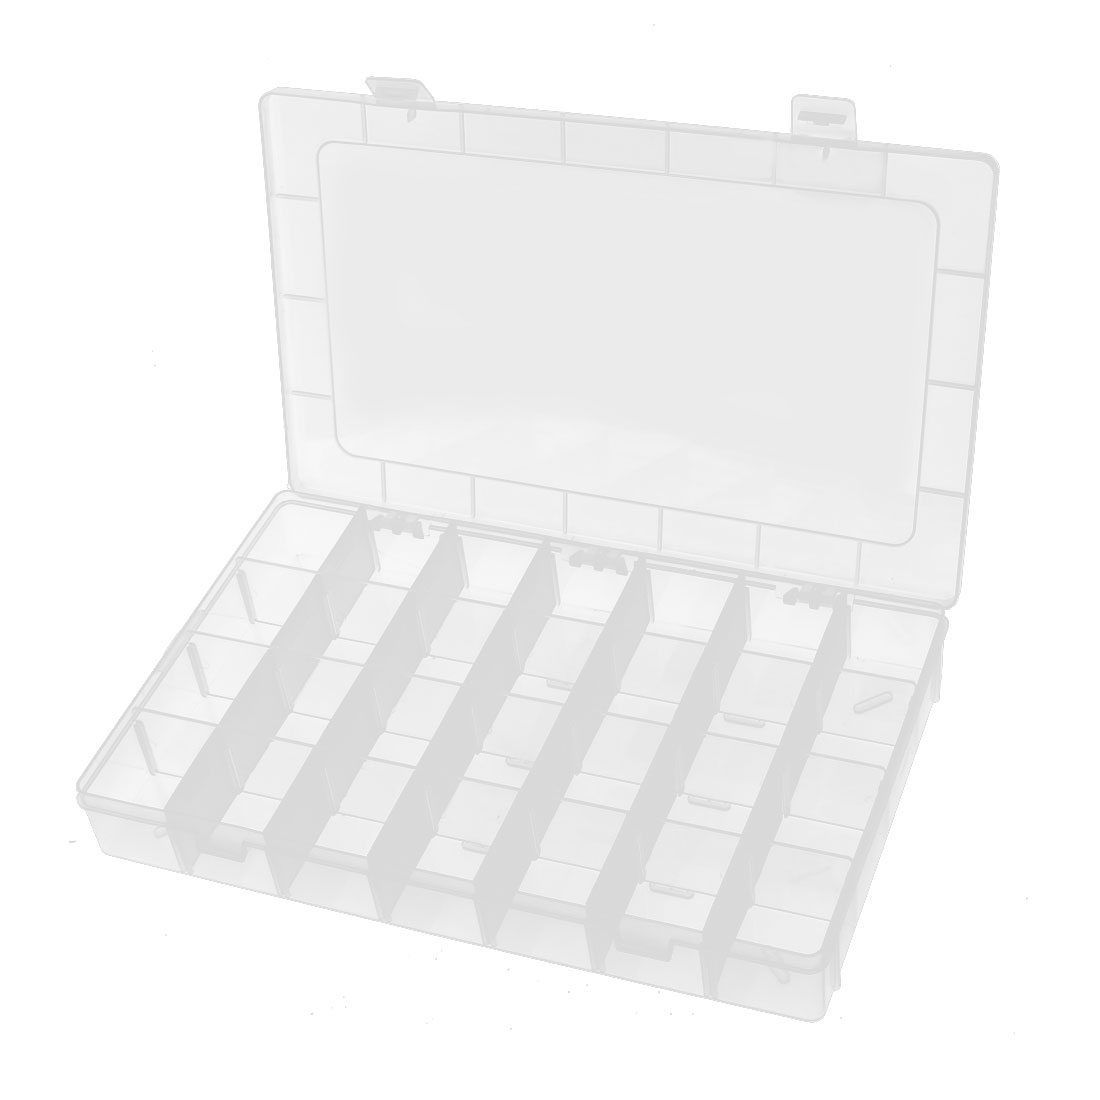 Bead organizers and storage containers Compare Prices at Nextag